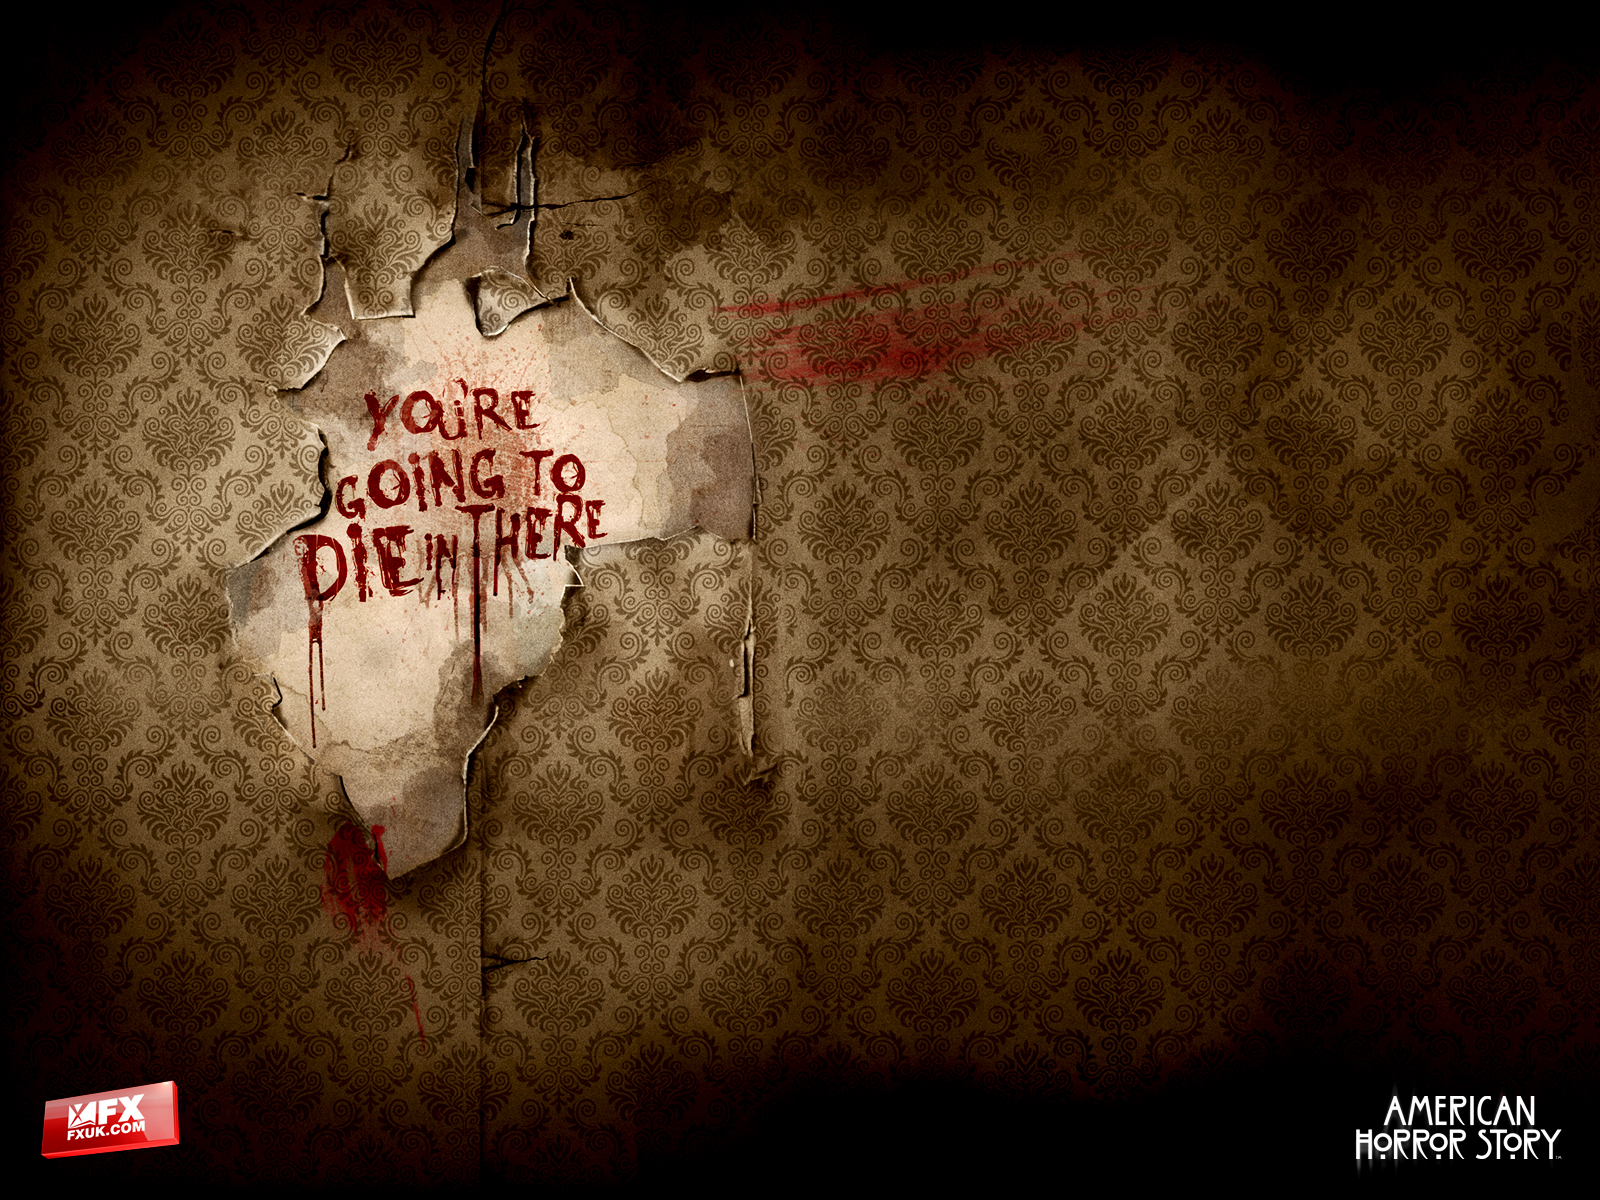 American horror story asylum tv series hd wallpapers desktop wallpaper - American horror story wallpaper ...